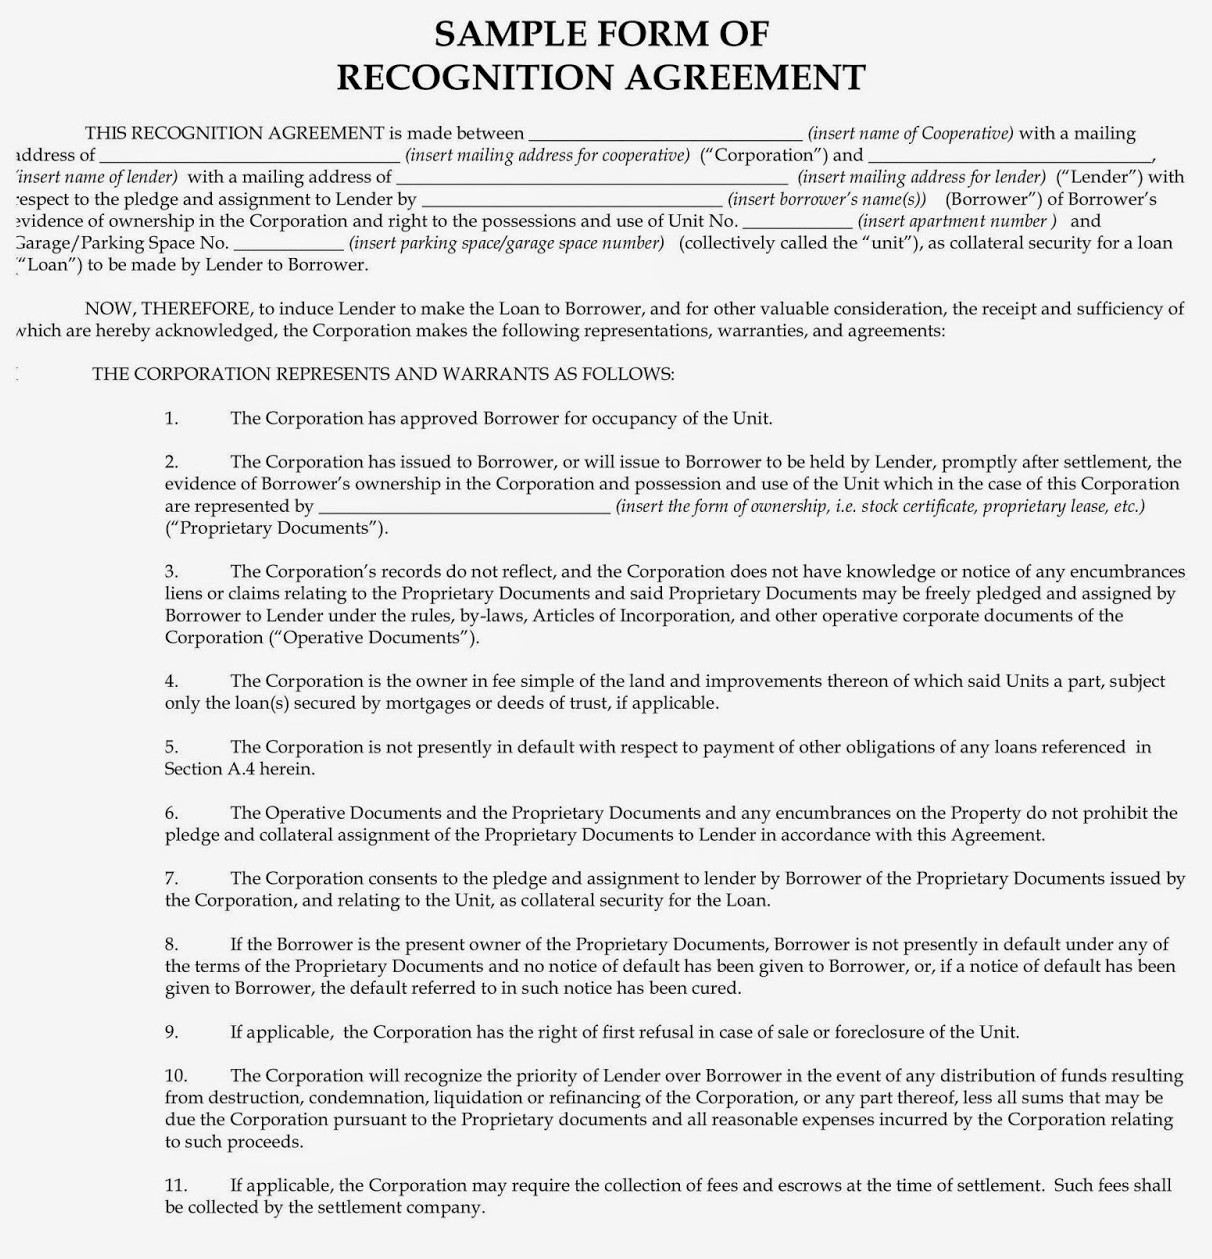 Aztech Recognition Agreements for Co-ops Explained